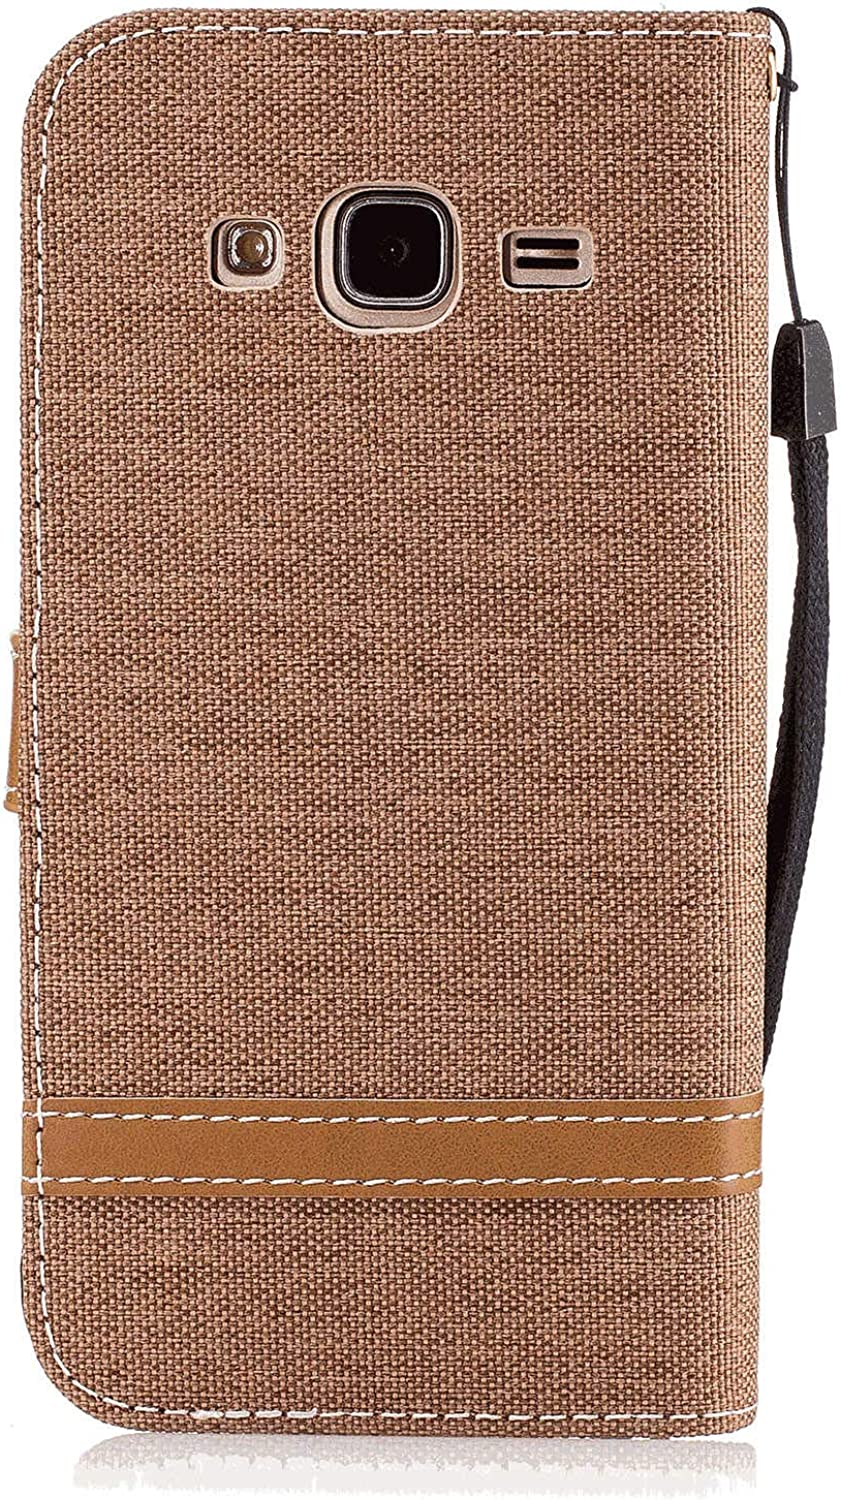 Simple-Style Leather Case for Samsung Galaxy NOTE 10 PRO Flip Cover fit for Samsung Galaxy NOTE 10 PRO business gifts